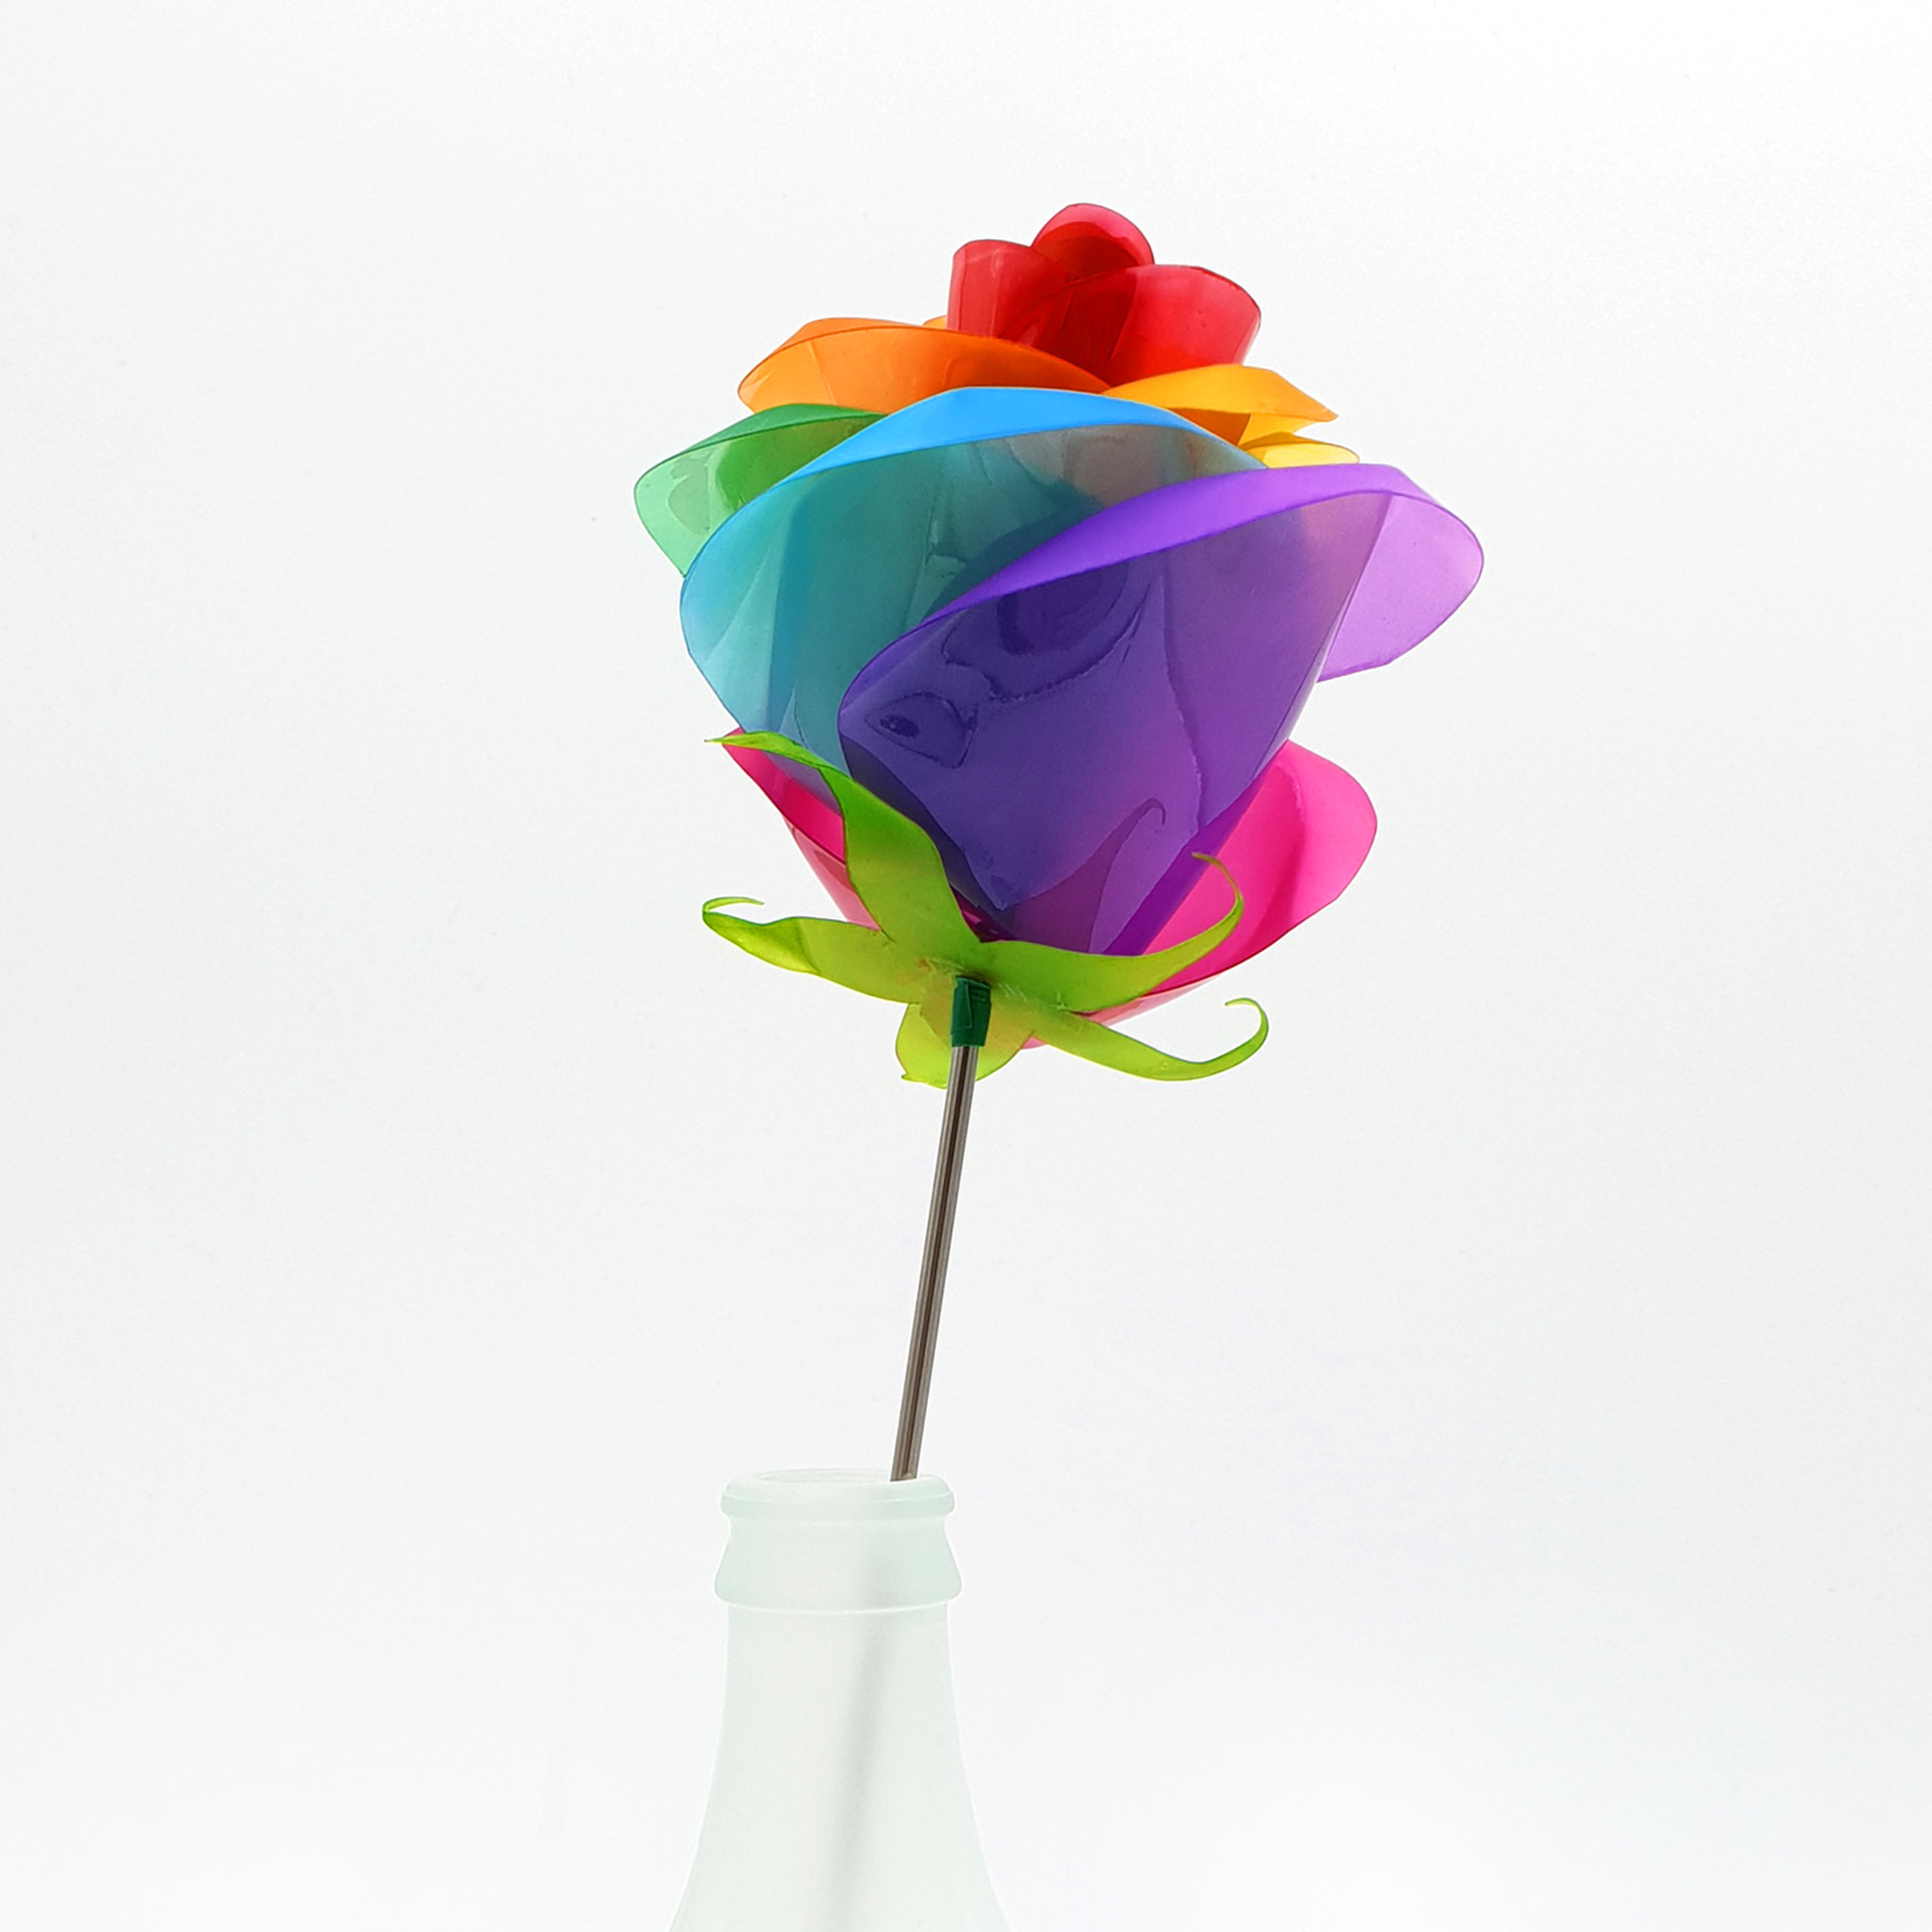 Rainbow Rose 3 Square.jpg